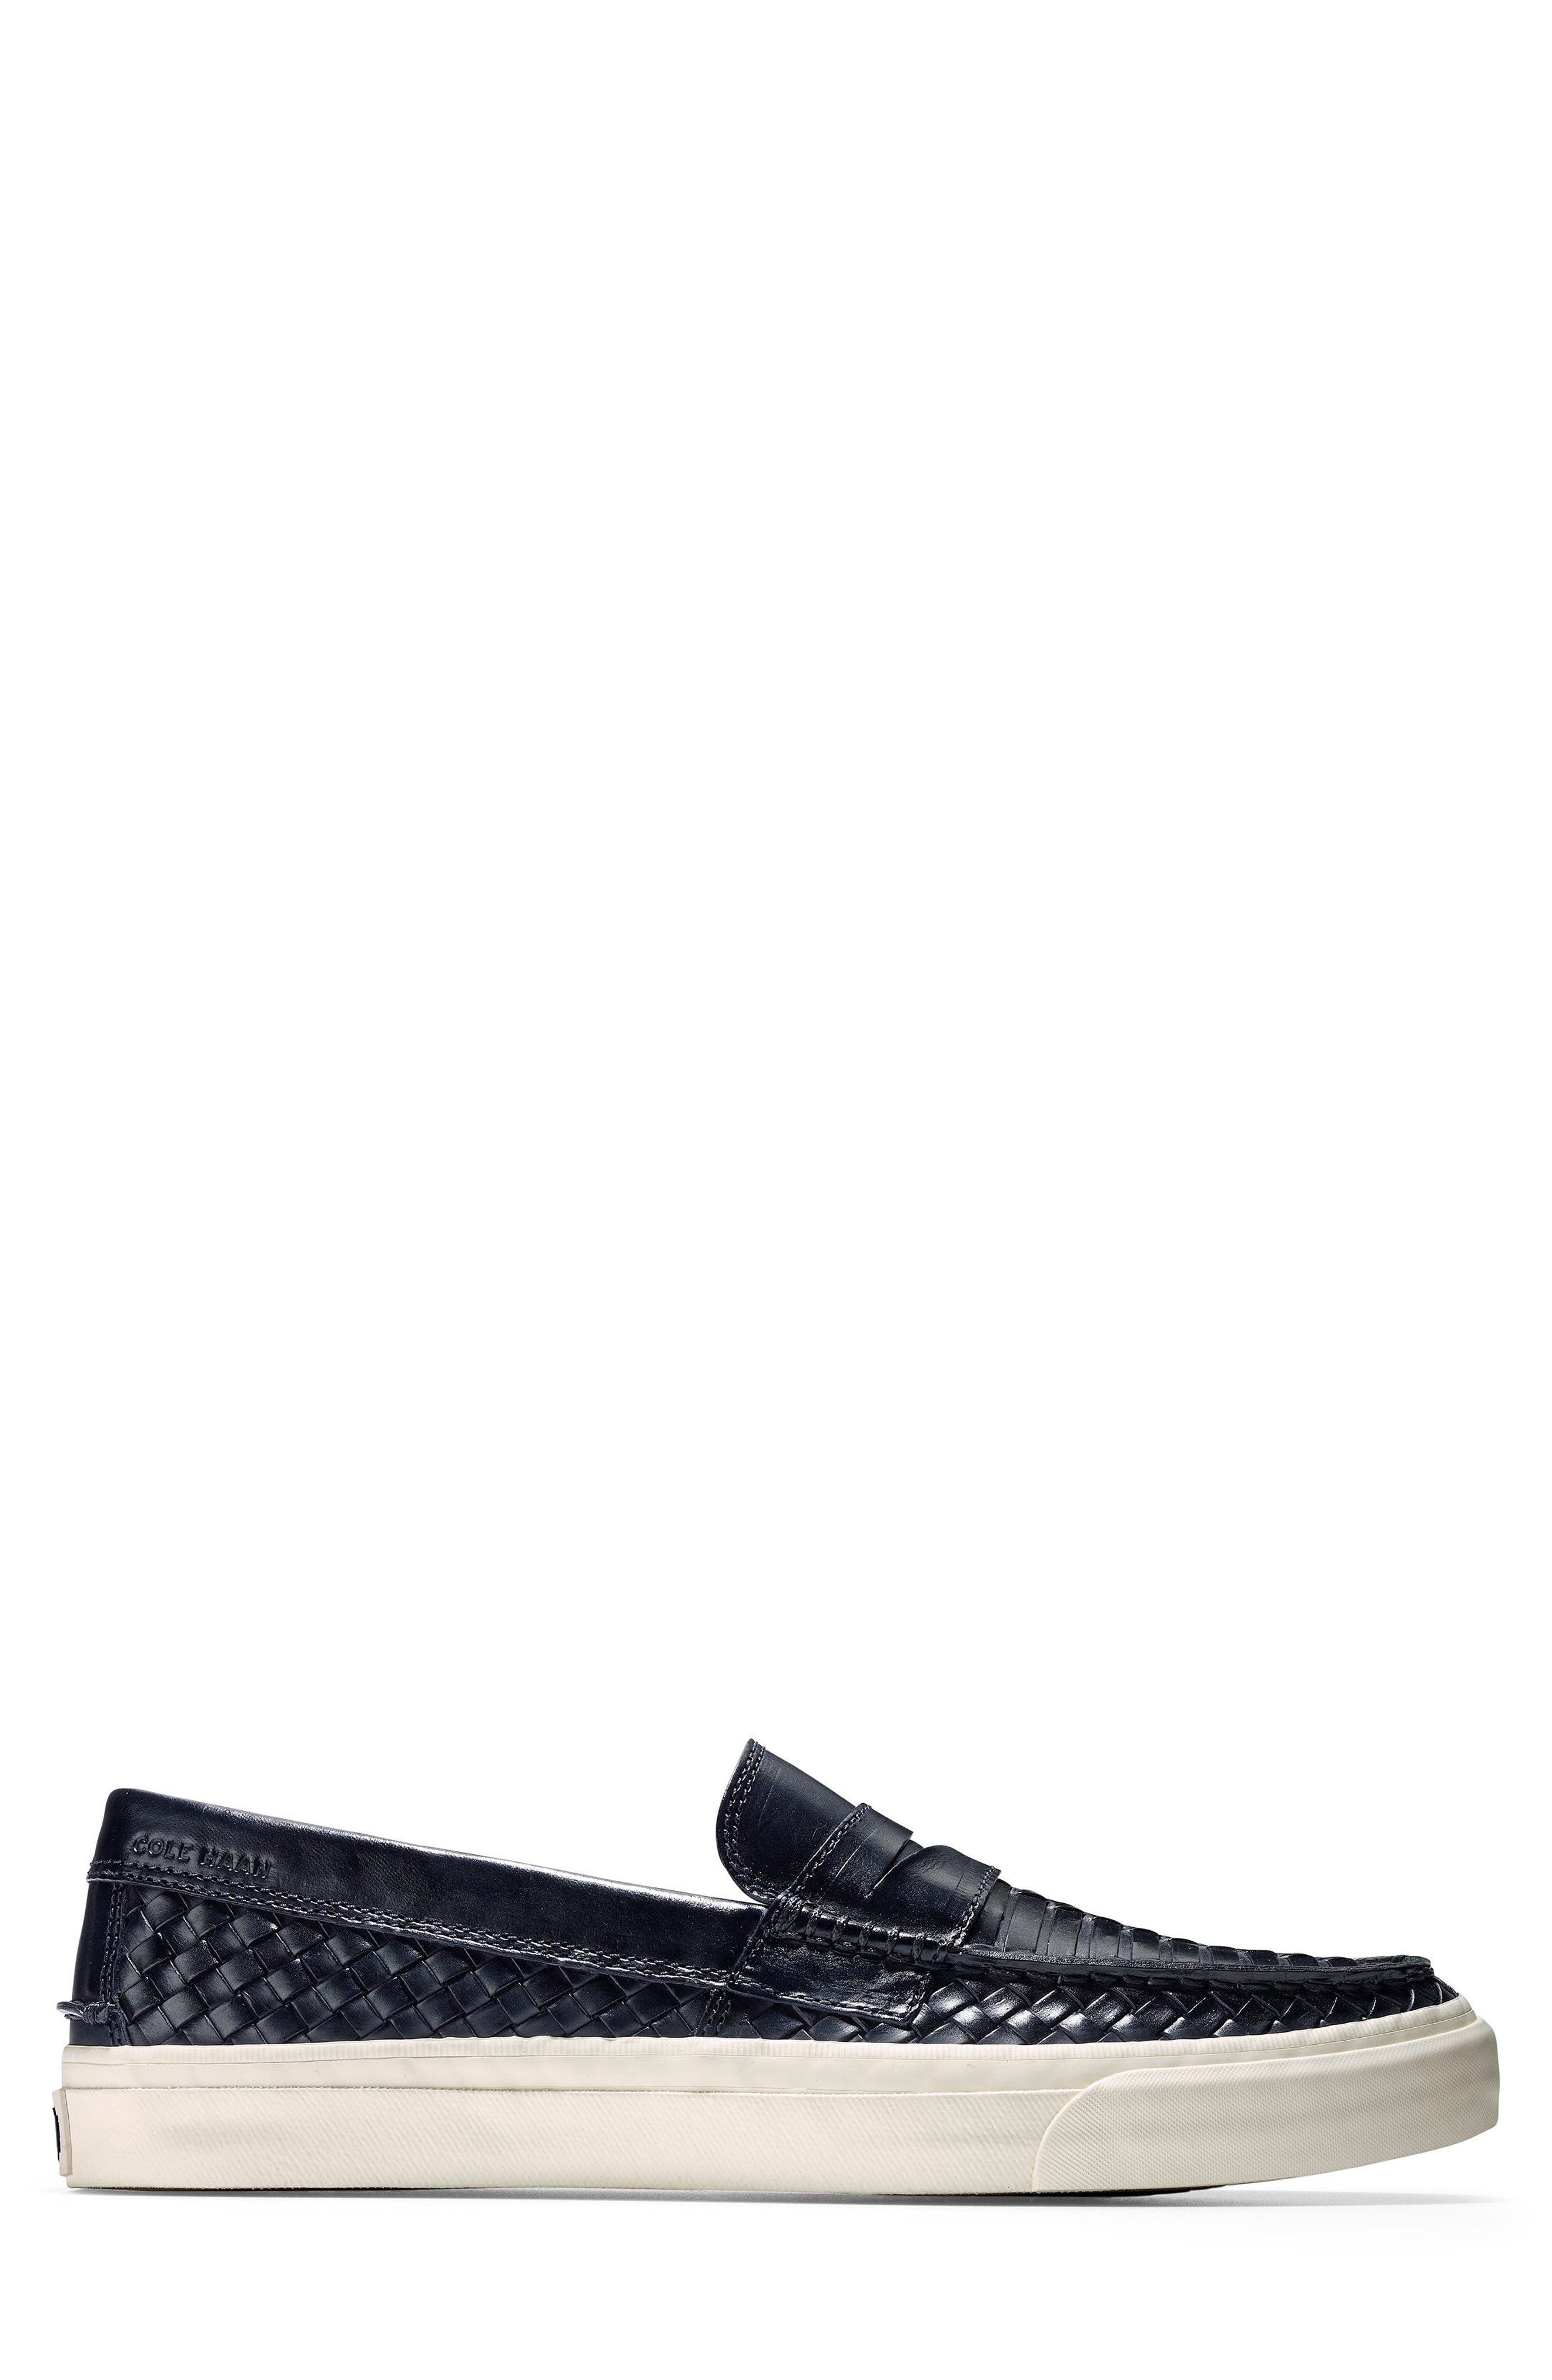 Pinch Weekend LX Huarache Loafer,                             Alternate thumbnail 9, color,